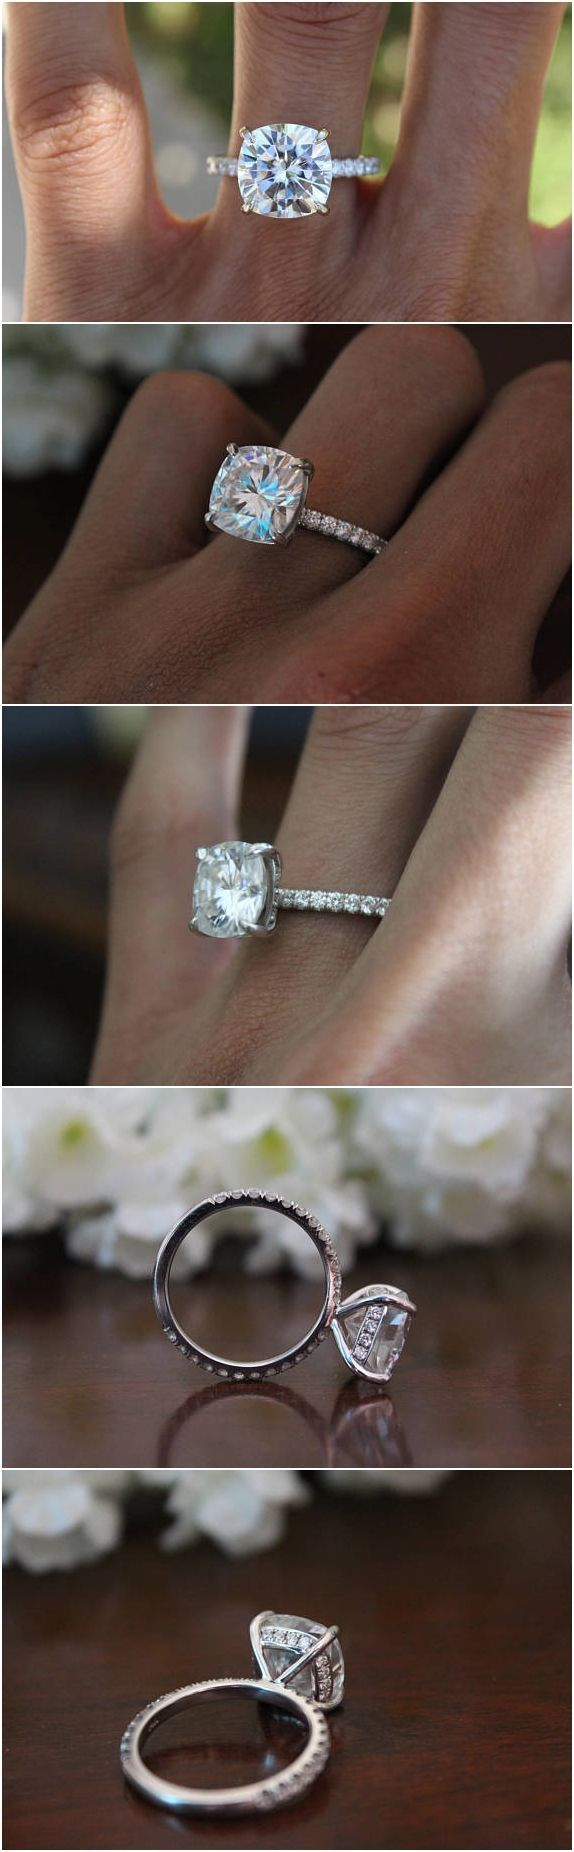 GIA 5 Carat Cushion Diamond & Hidden Halo Engagement Ring Platinum, Anniversary Rings for Women, 5ct Luxury Rings, Raven Fine Jewelers